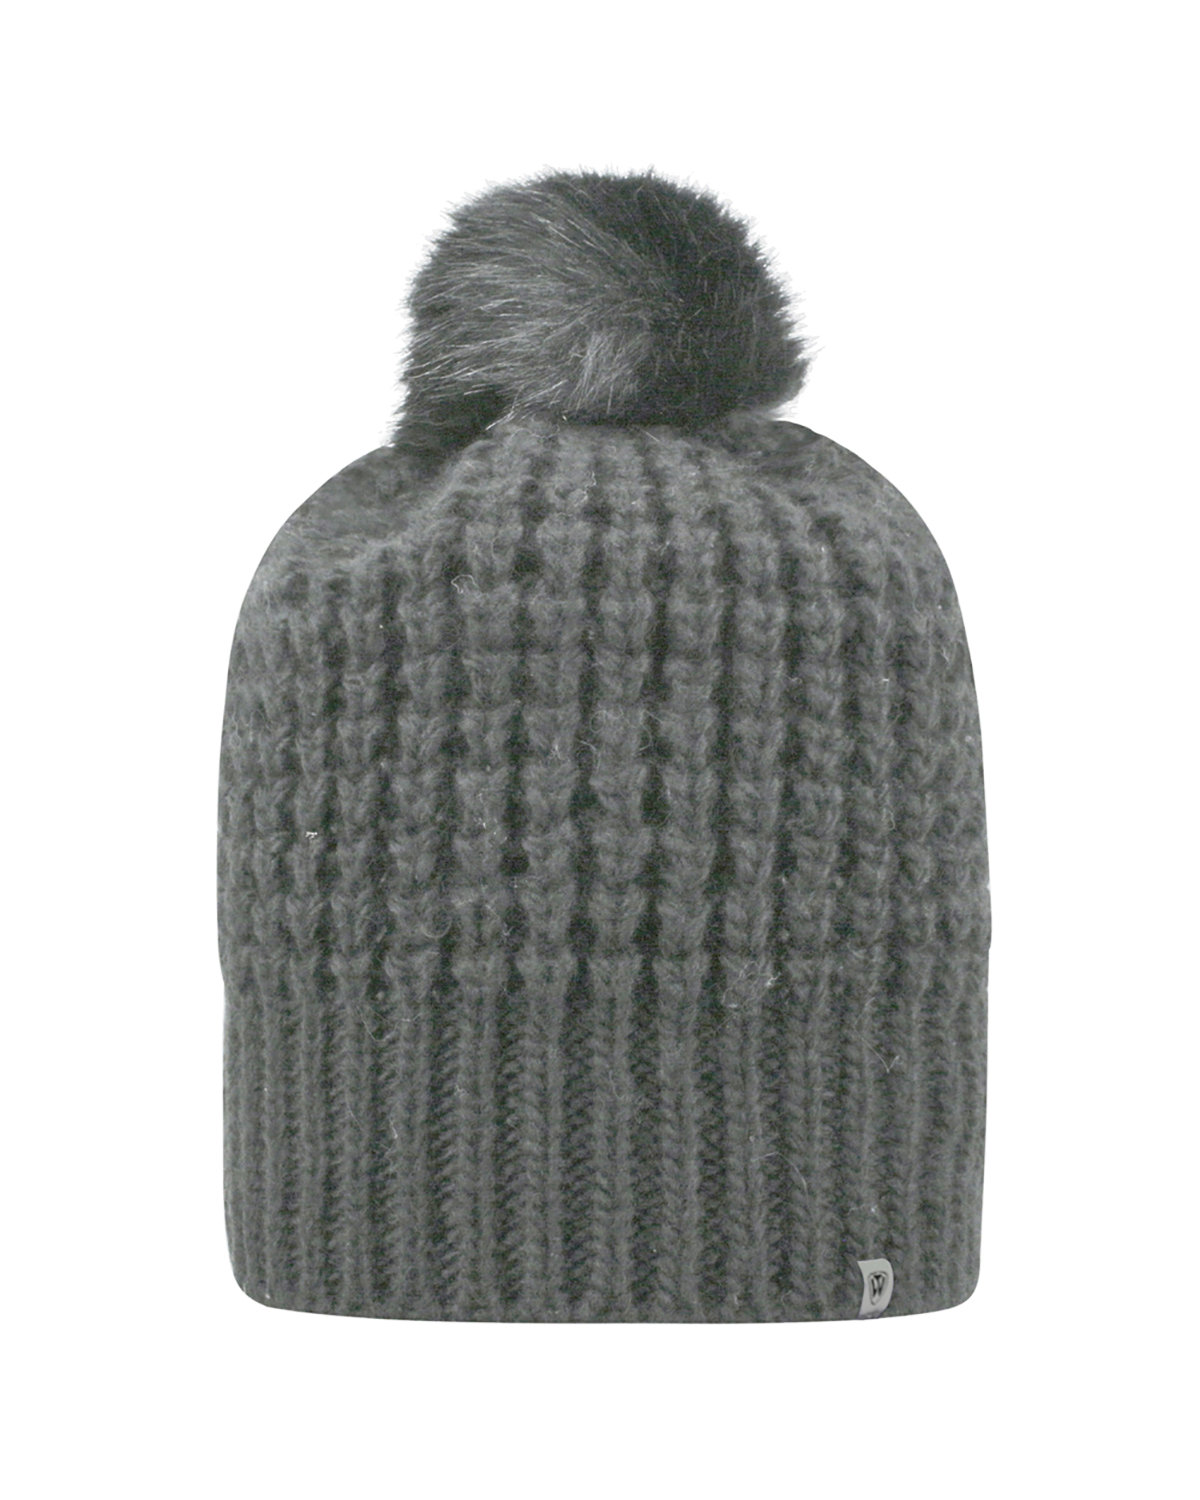 Top Of The World Adult Slouch Bunny Knit Cap GREY